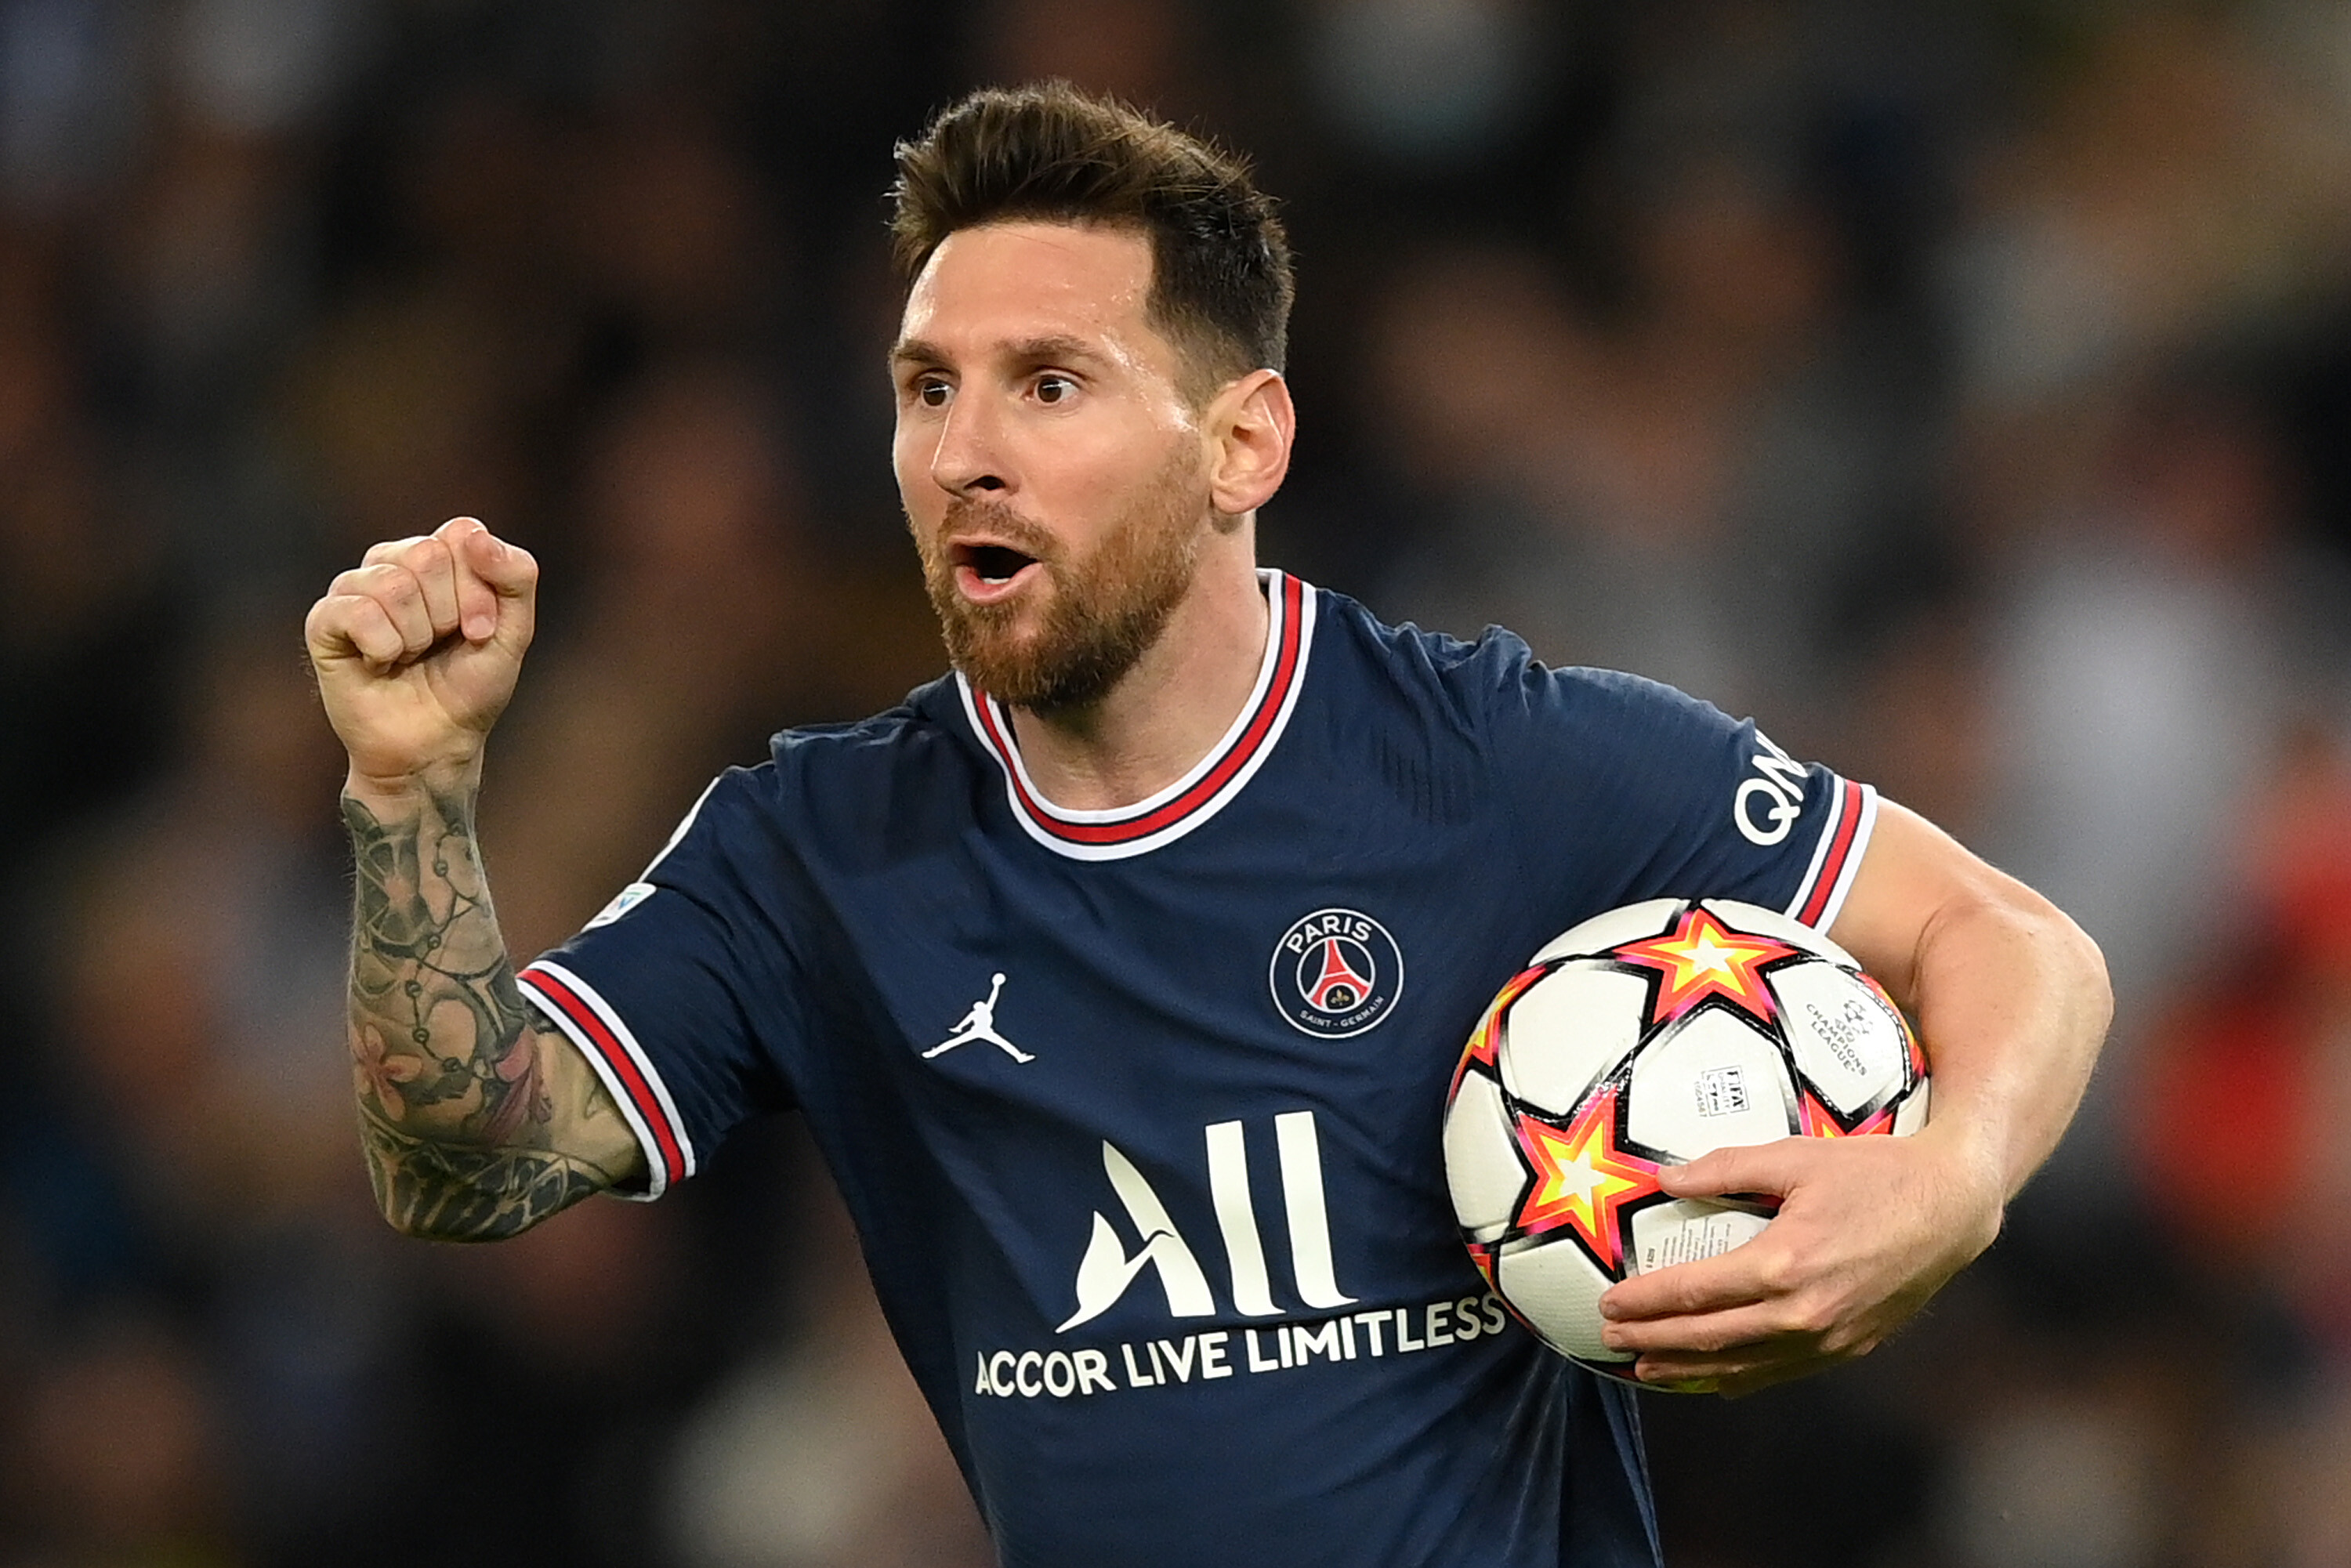 Lionel Messi gives up chance to score first hat-trick for Paris Saint-Germain